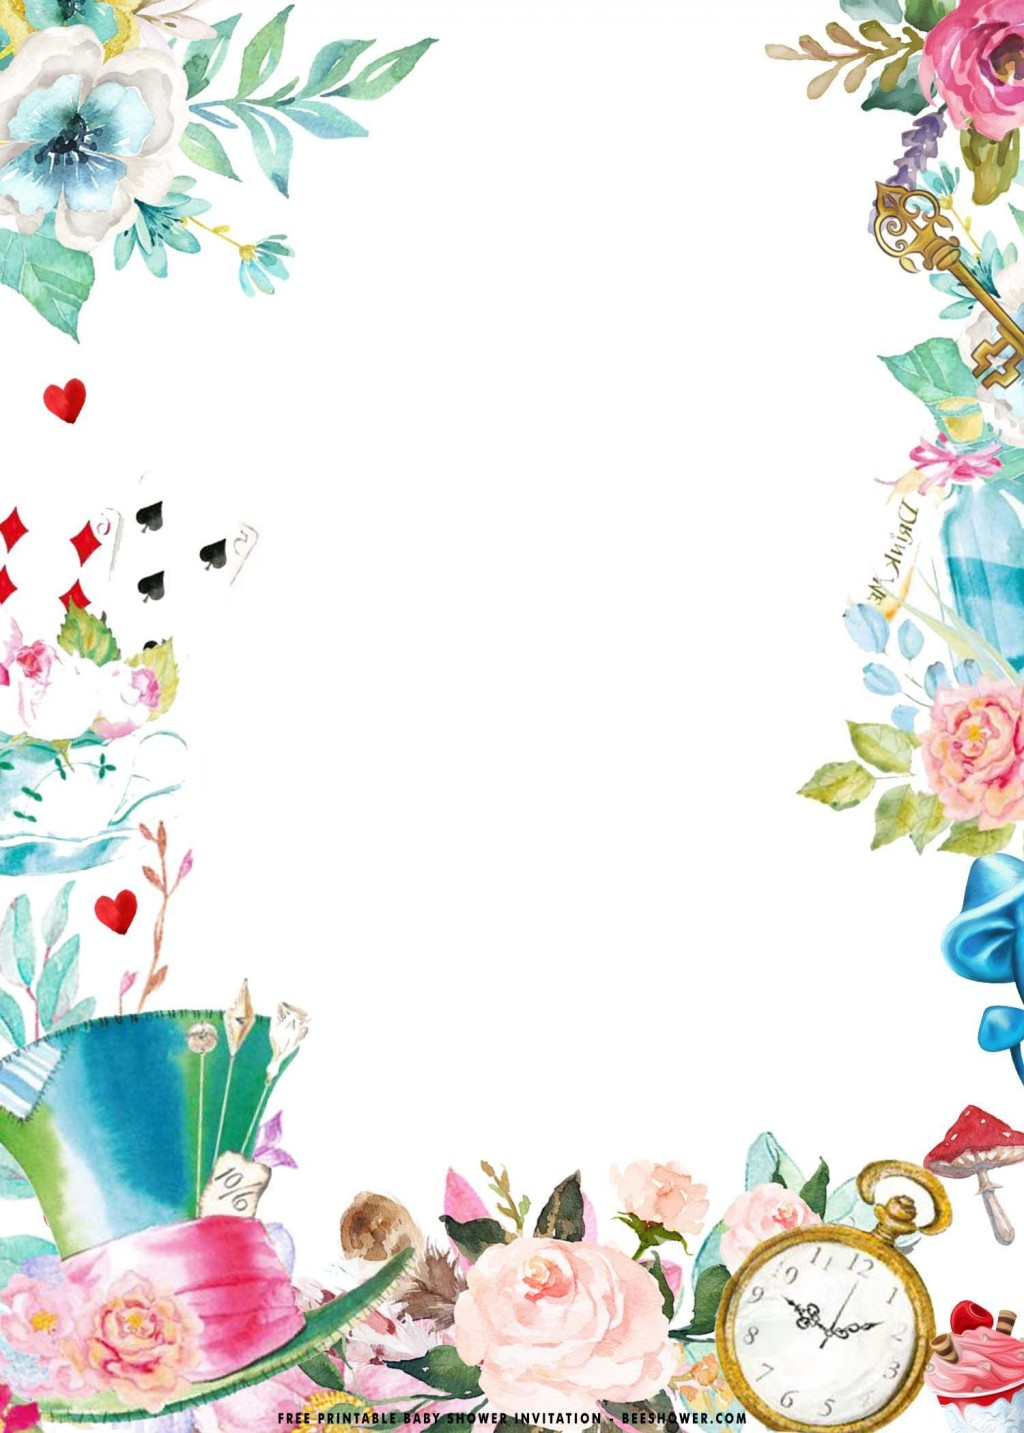 003 Incredible Alice In Wonderland Tea Party Template Design  Templates Invitation FreeLarge